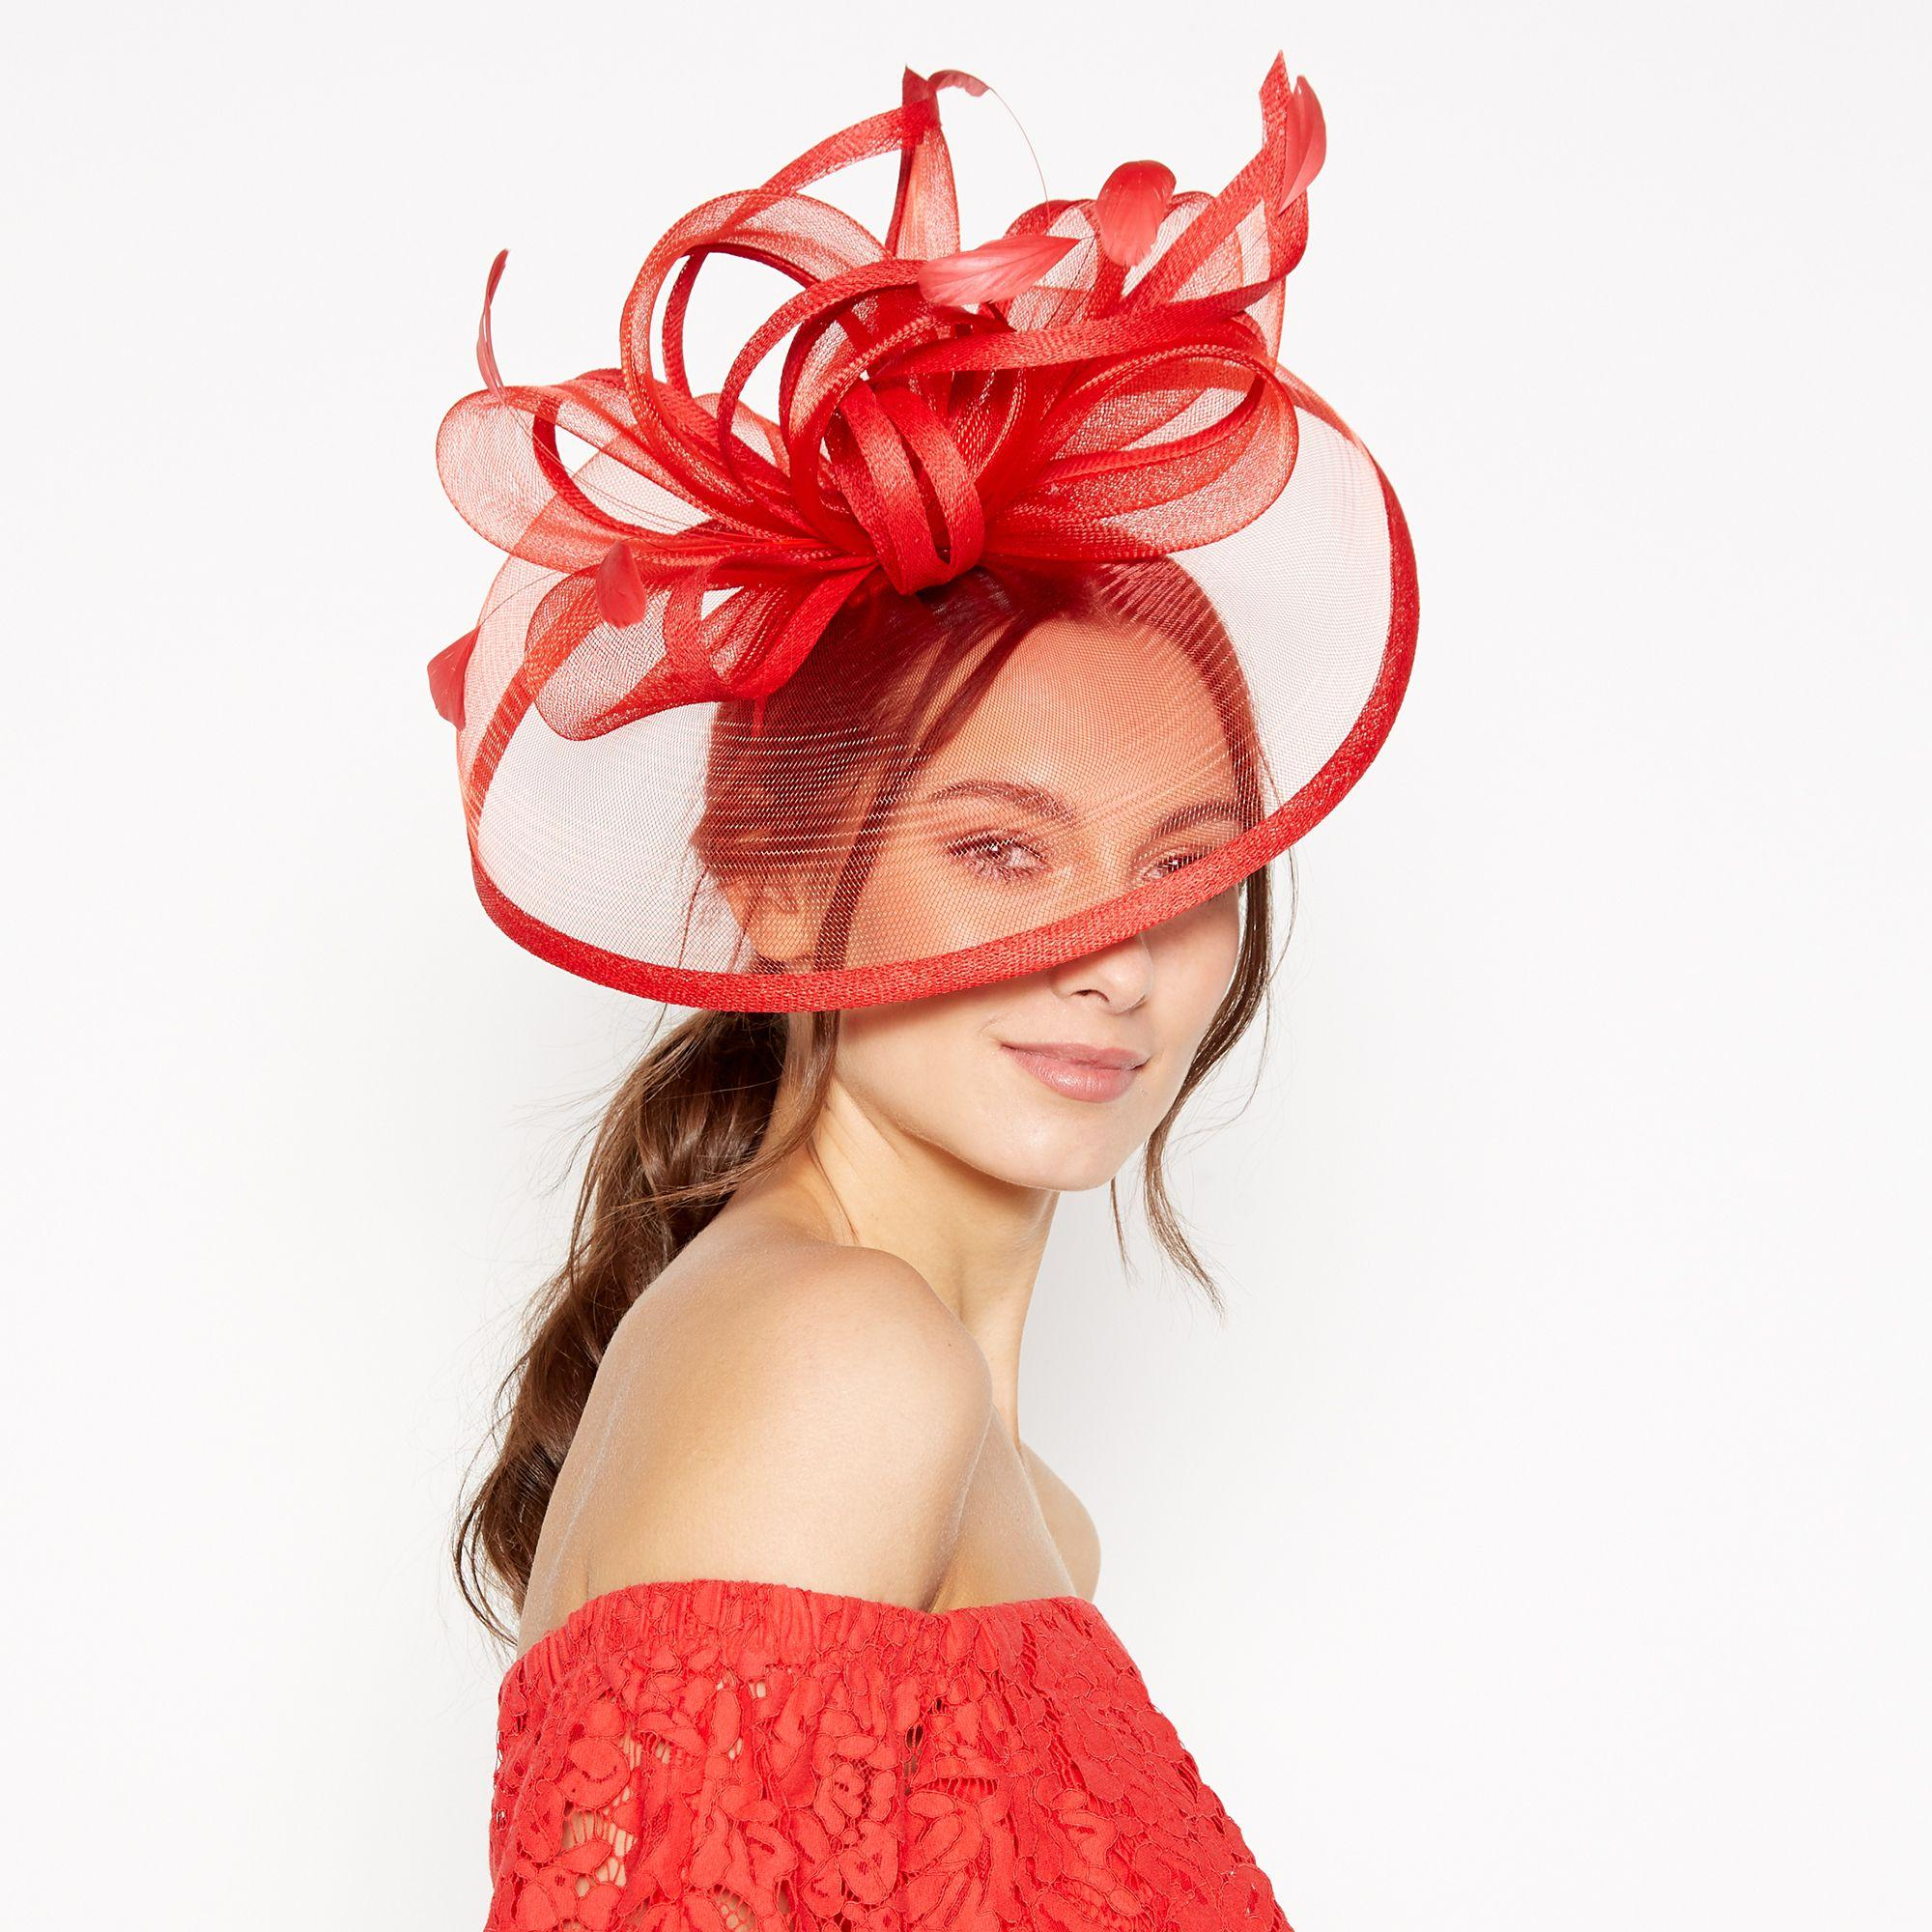 d3c85537a7ac3 Début Red Sinamay Loop Crin Saucer Fascinator in Red - Lyst